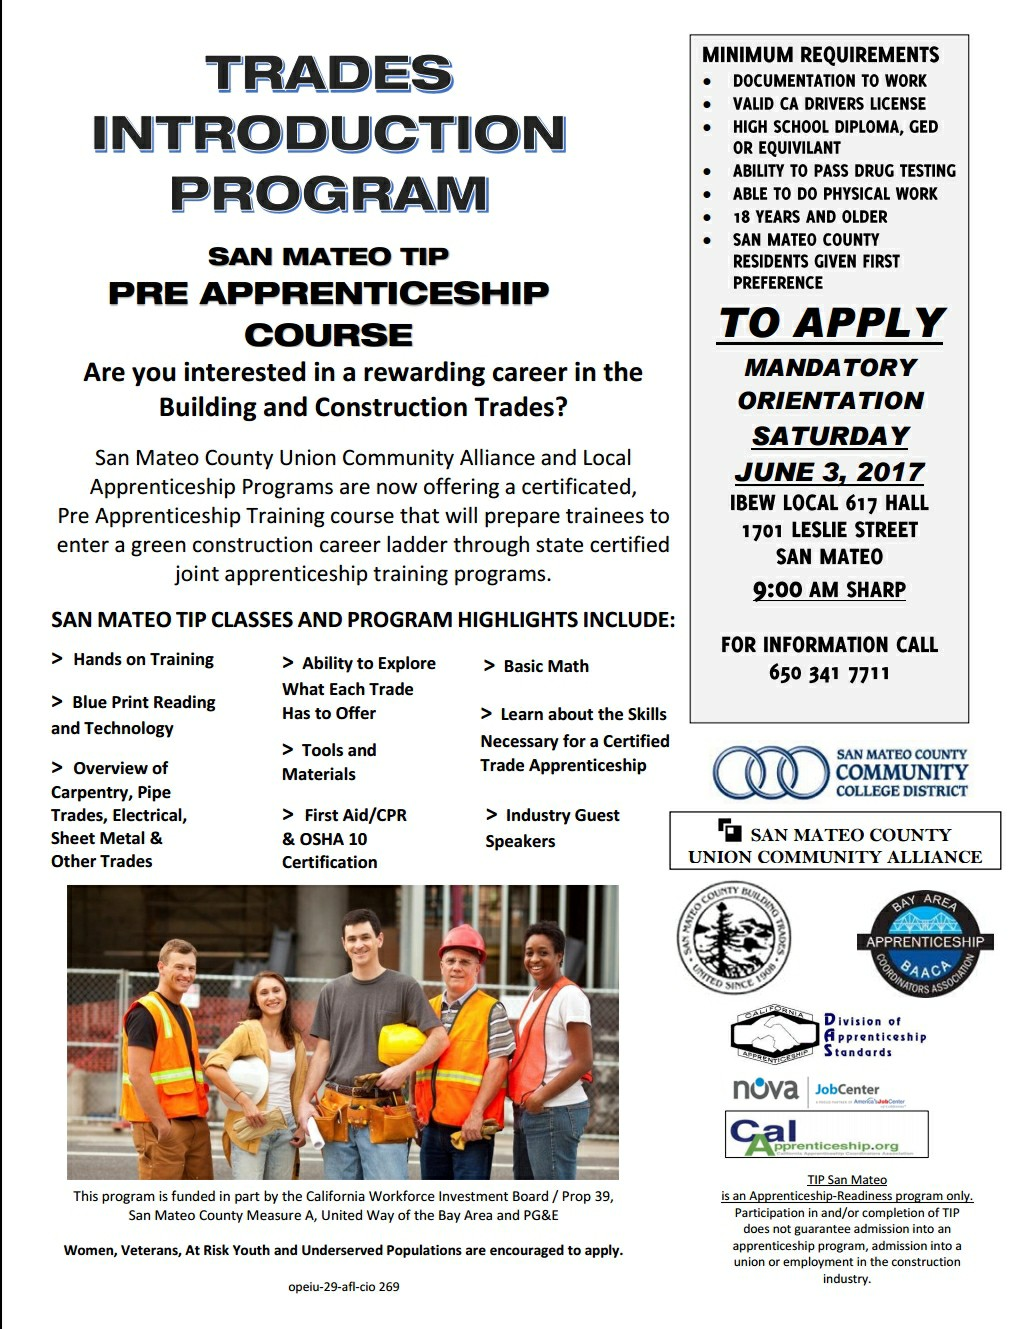 Trades Introduction Program: San Mateo TIP Pre-Apprenticeship Course SAT JUNE 3rd